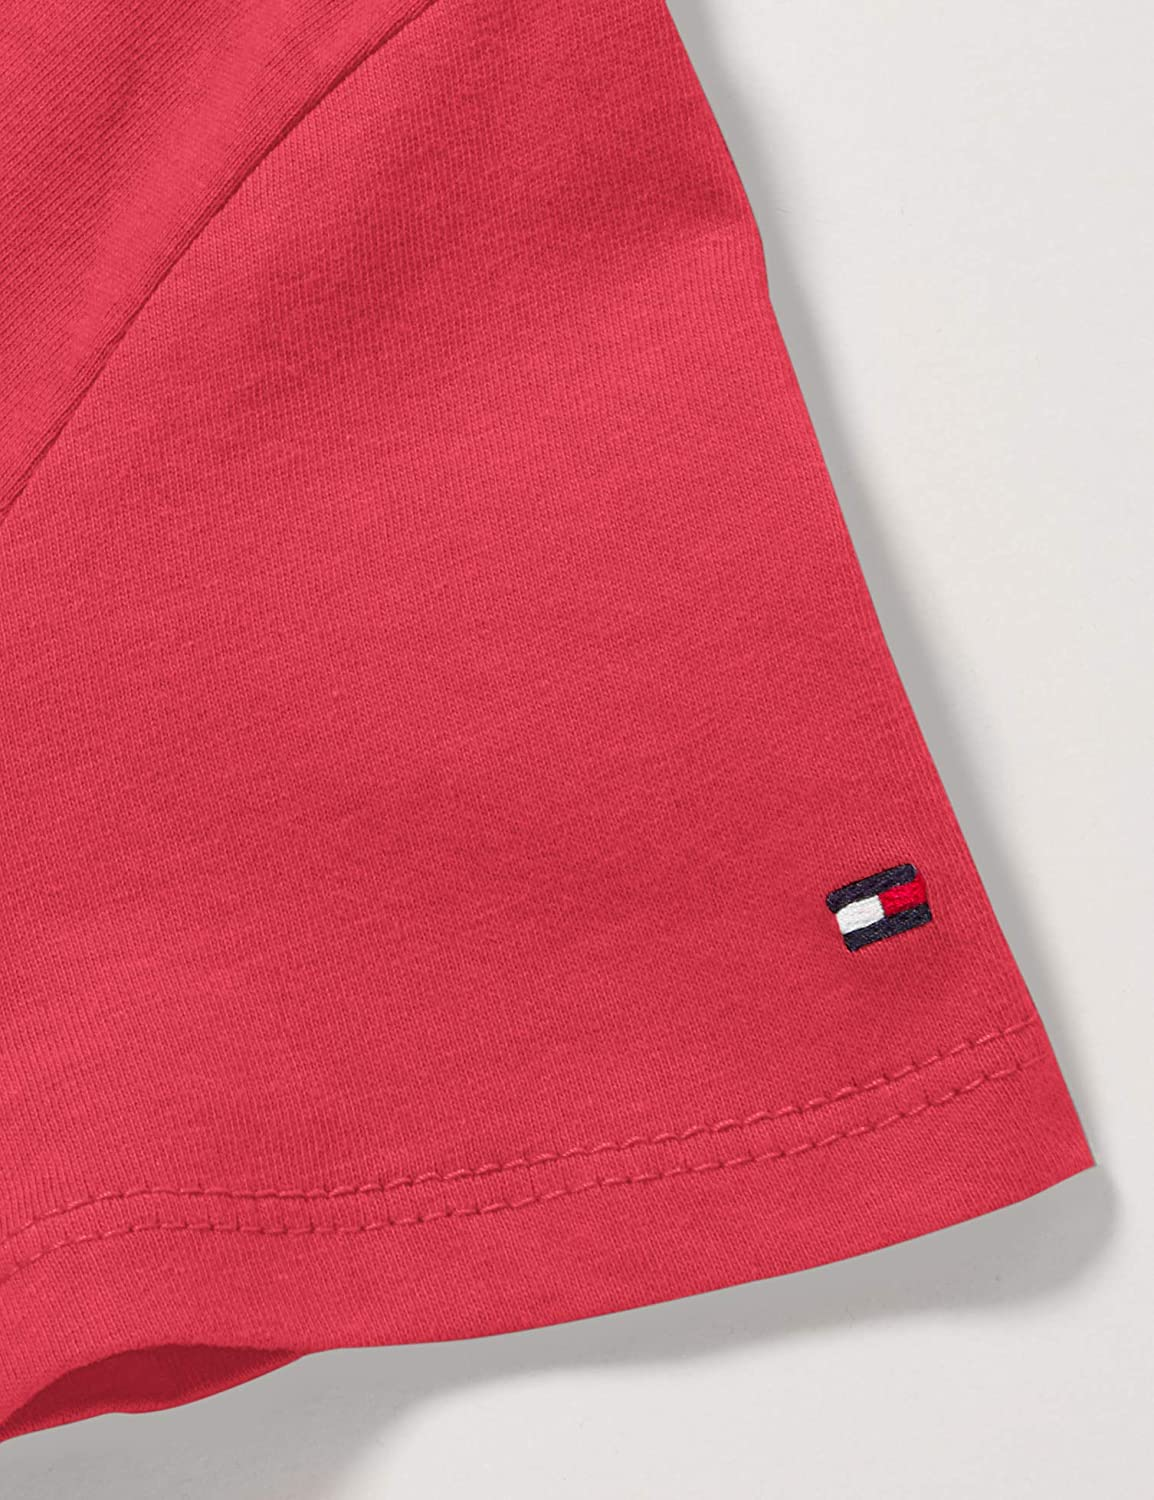 Tommy Hilfiger Essential Tee S//S Maglietta Bambina